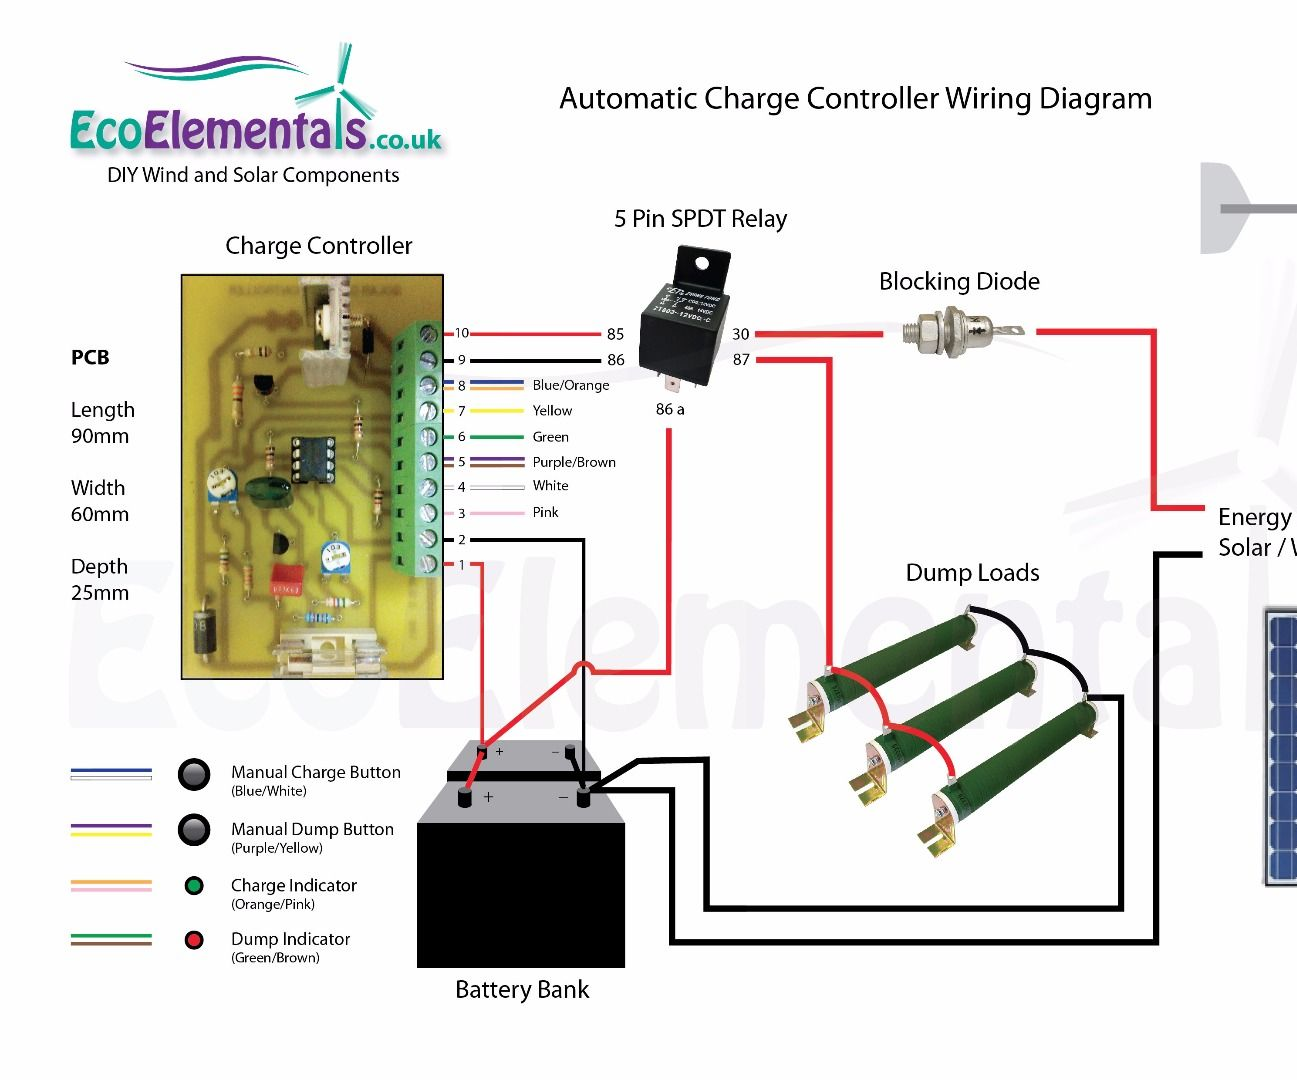 charge controller wiring diagram for diy wind turbine or solar panels wind turbine wiring diagram wind turbine wiring diagram [ 1297 x 1080 Pixel ]